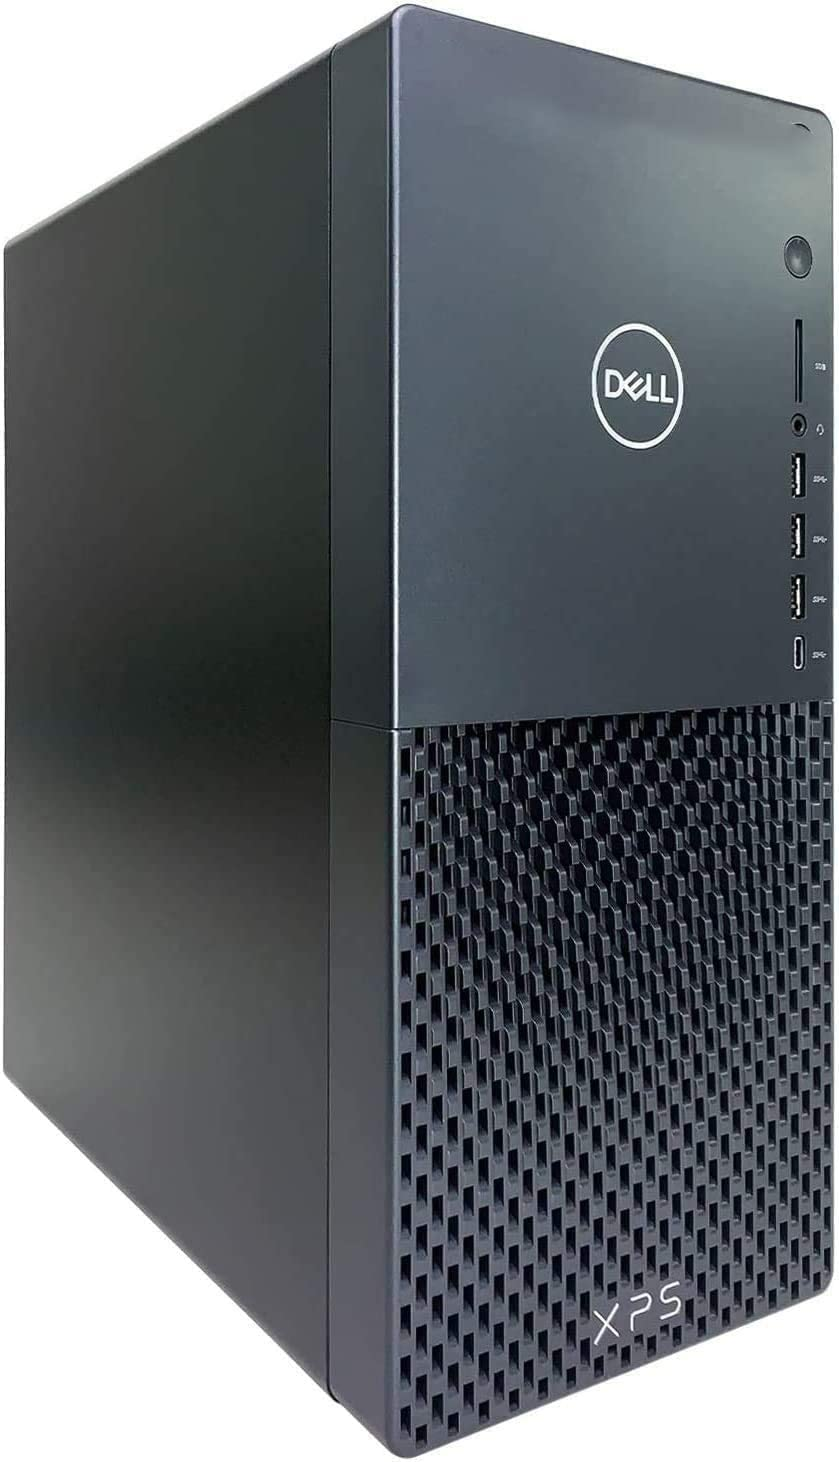 Dell XPS 8940 MiniTower Desktop, Intel Core i3-10100 up to 4.3GHz, 8GB DDR4, 1TB HDD, Dell Wired Keyboard& Mouse, WiFi& BT4.1, HDMI, 12 Month McAfee LiveSafe, Windows 10 Home, TWE Mouse Pad